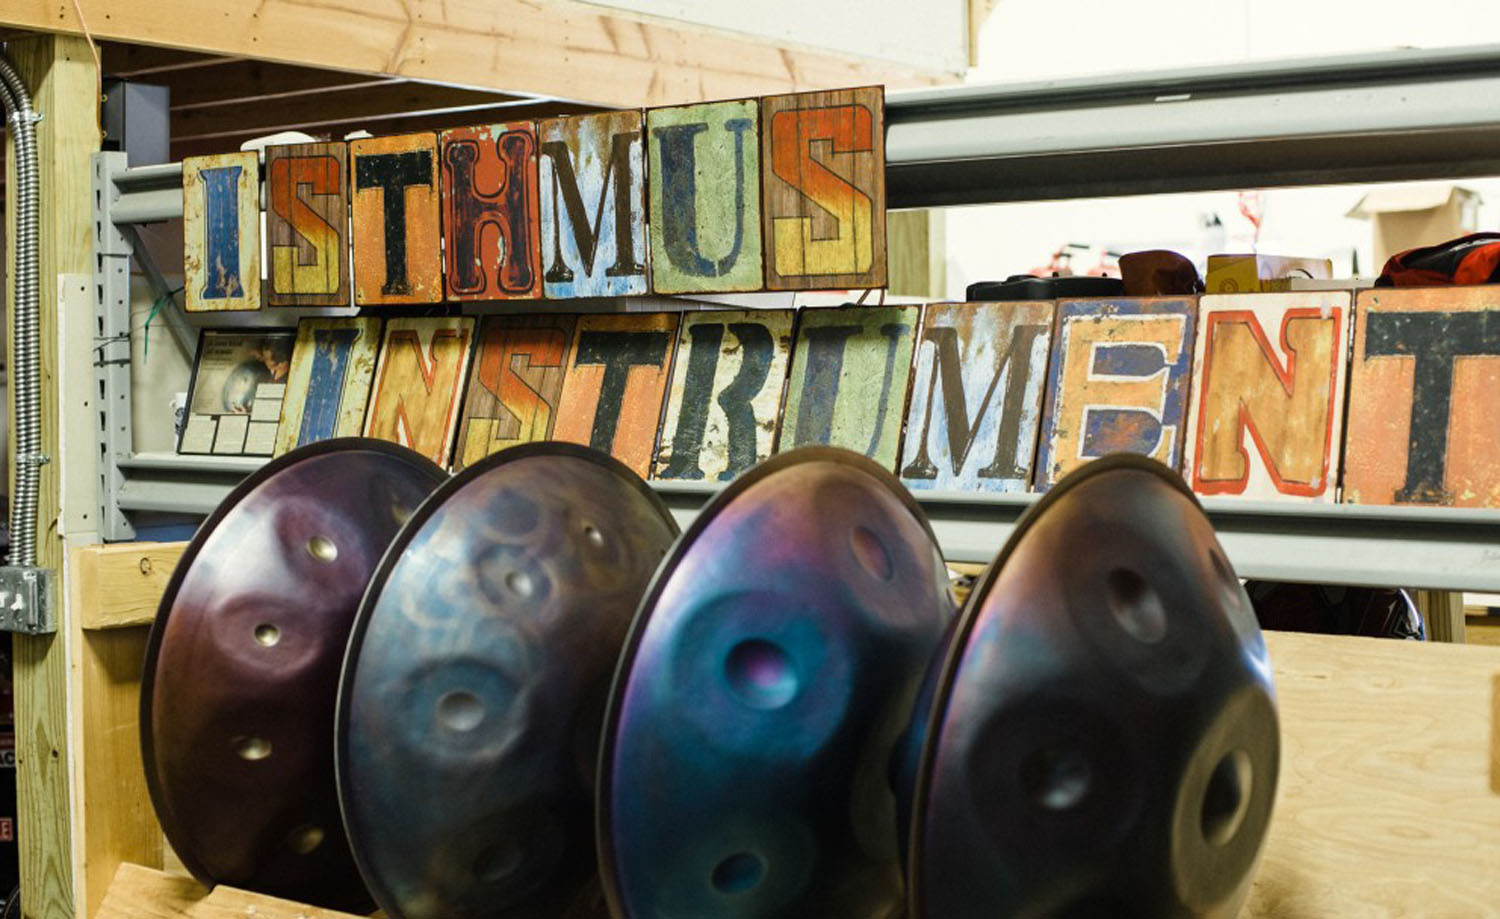 Our-instruments-isthmus-handpan-sign.jpg